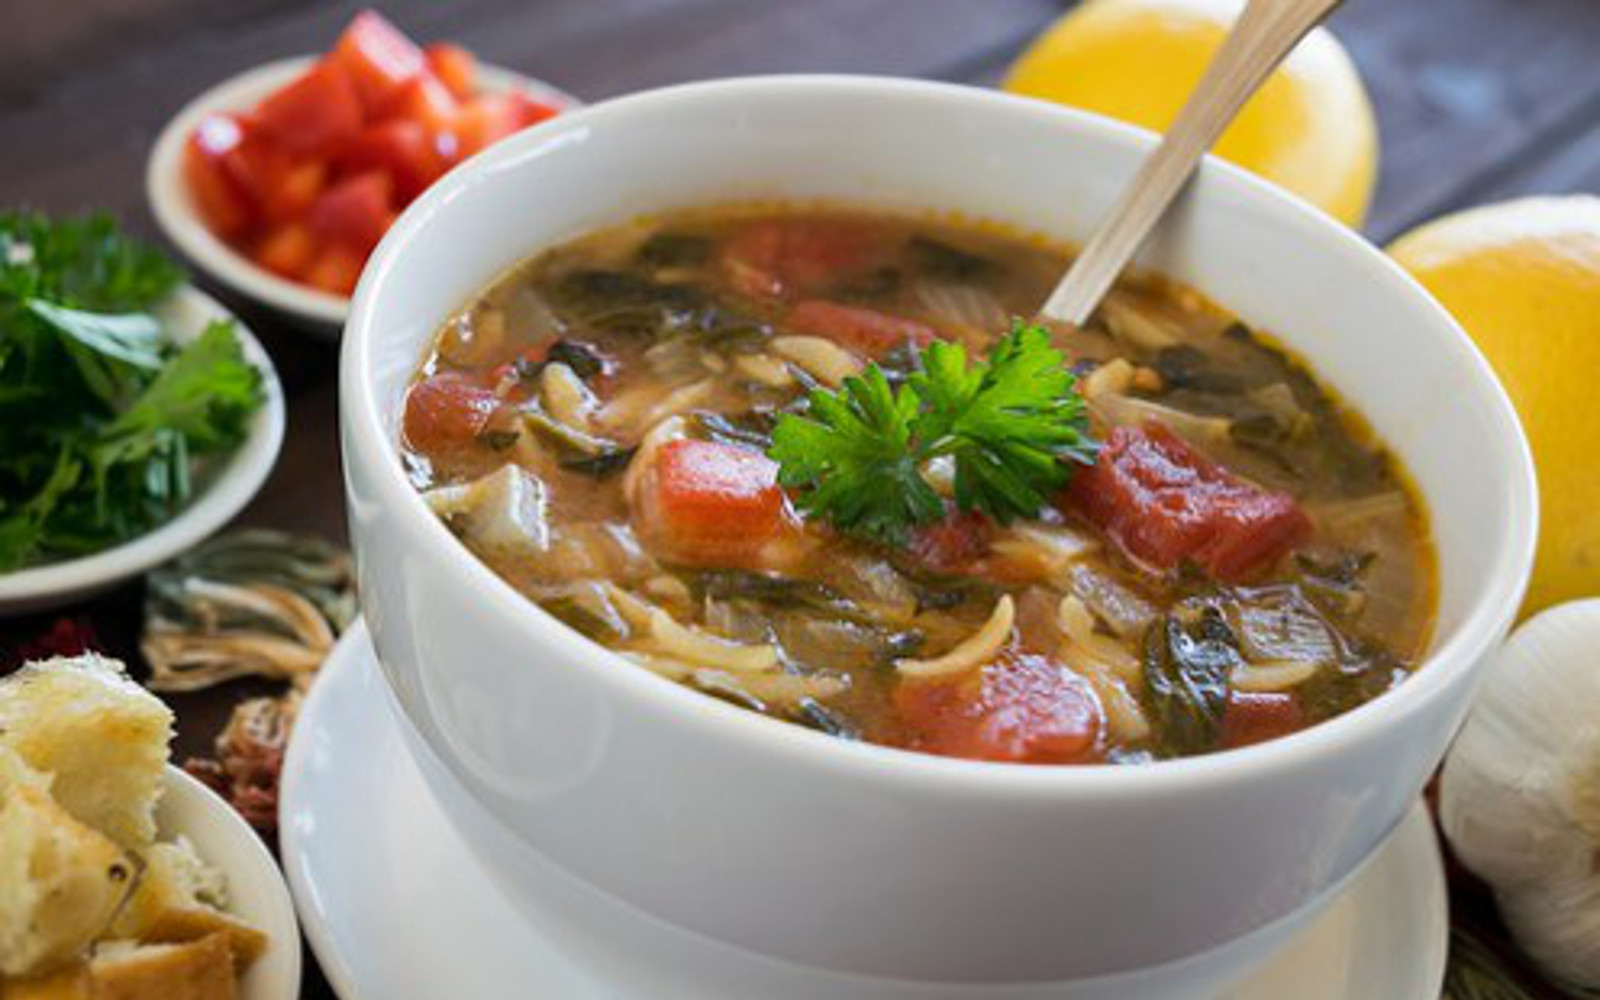 Bowl of Vegan Nut-Free Greek Spinach and Orzo Soup